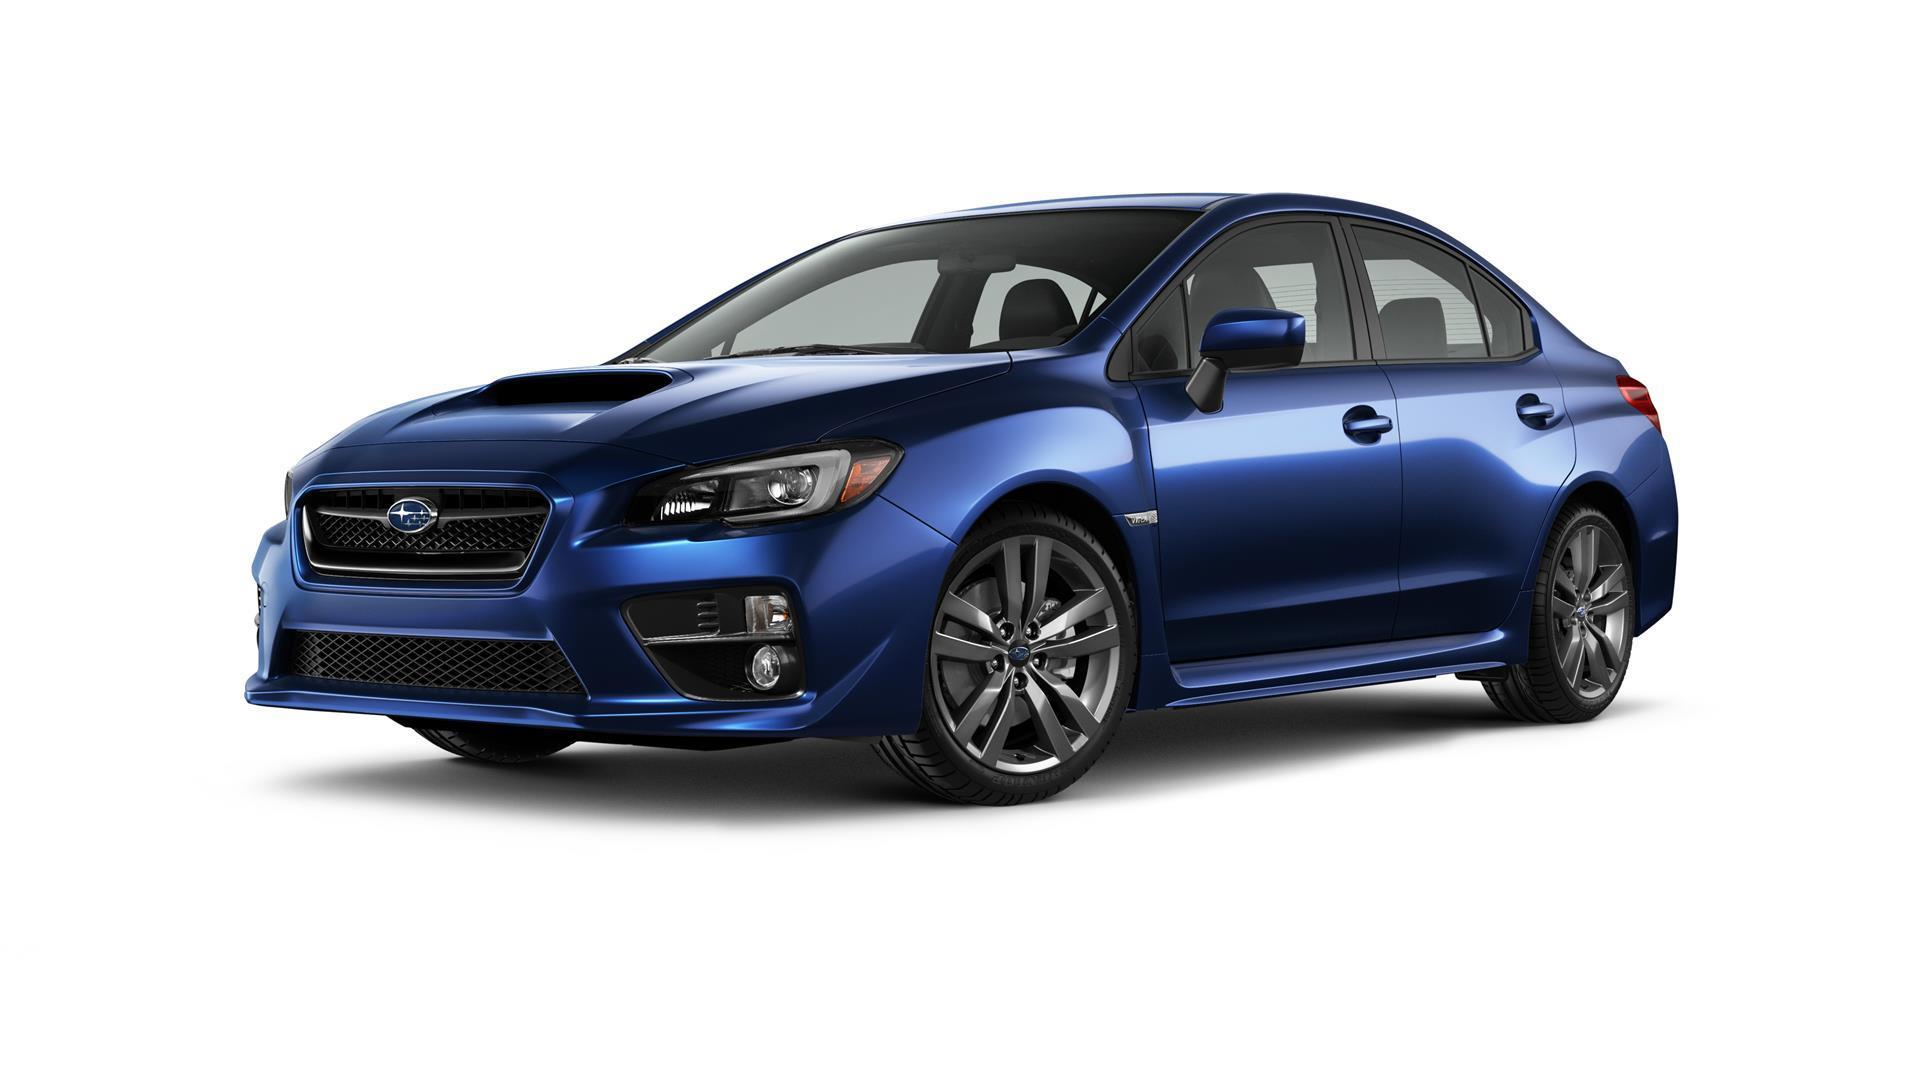 2017 subaru wrx technical specifications and data engine dimensions and mechanical details. Black Bedroom Furniture Sets. Home Design Ideas